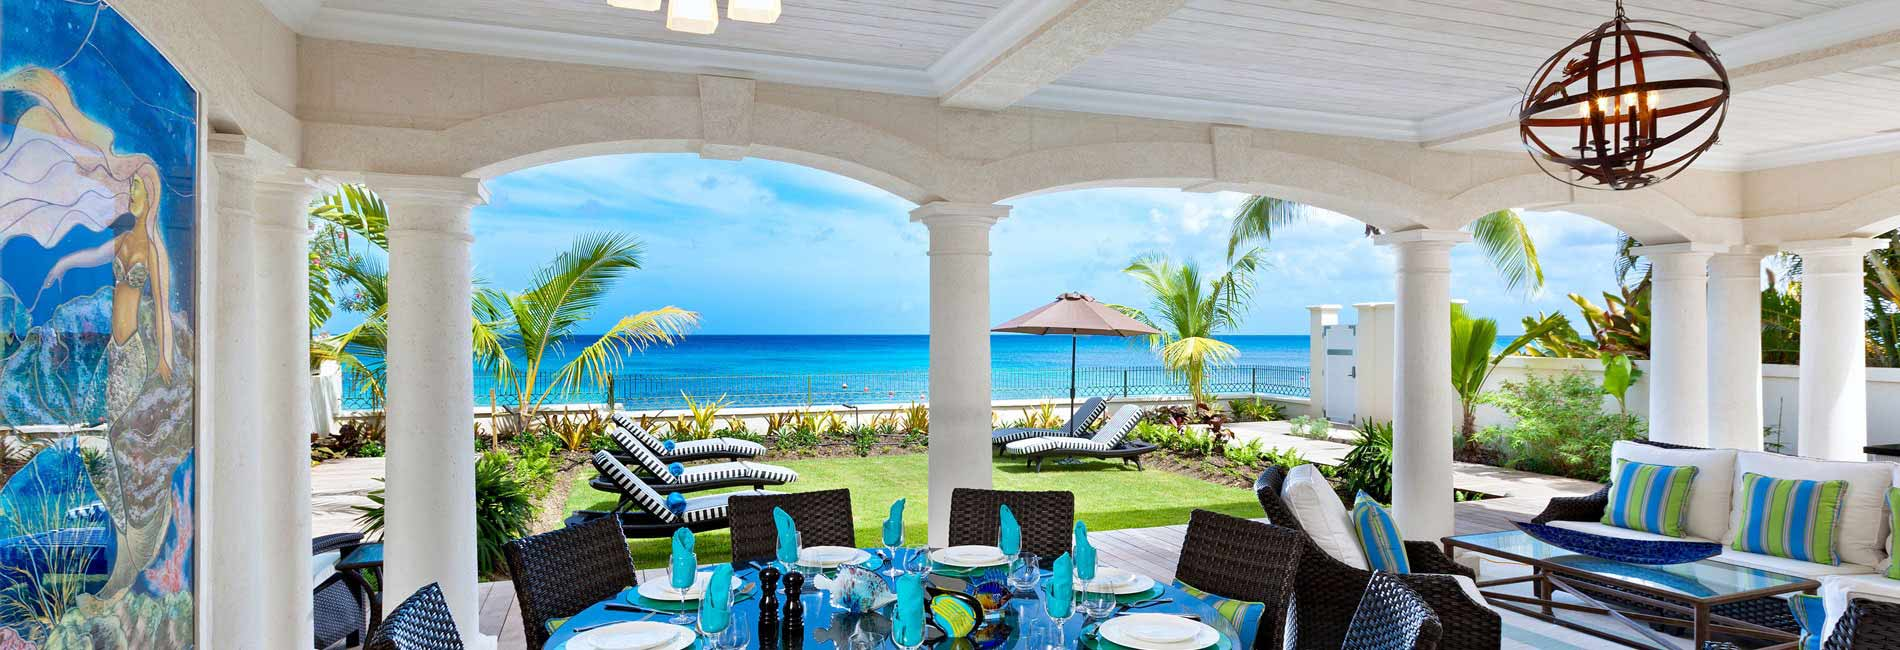 Still Fathoms - Reeds Bay, St James - Vacation Rental Barbados